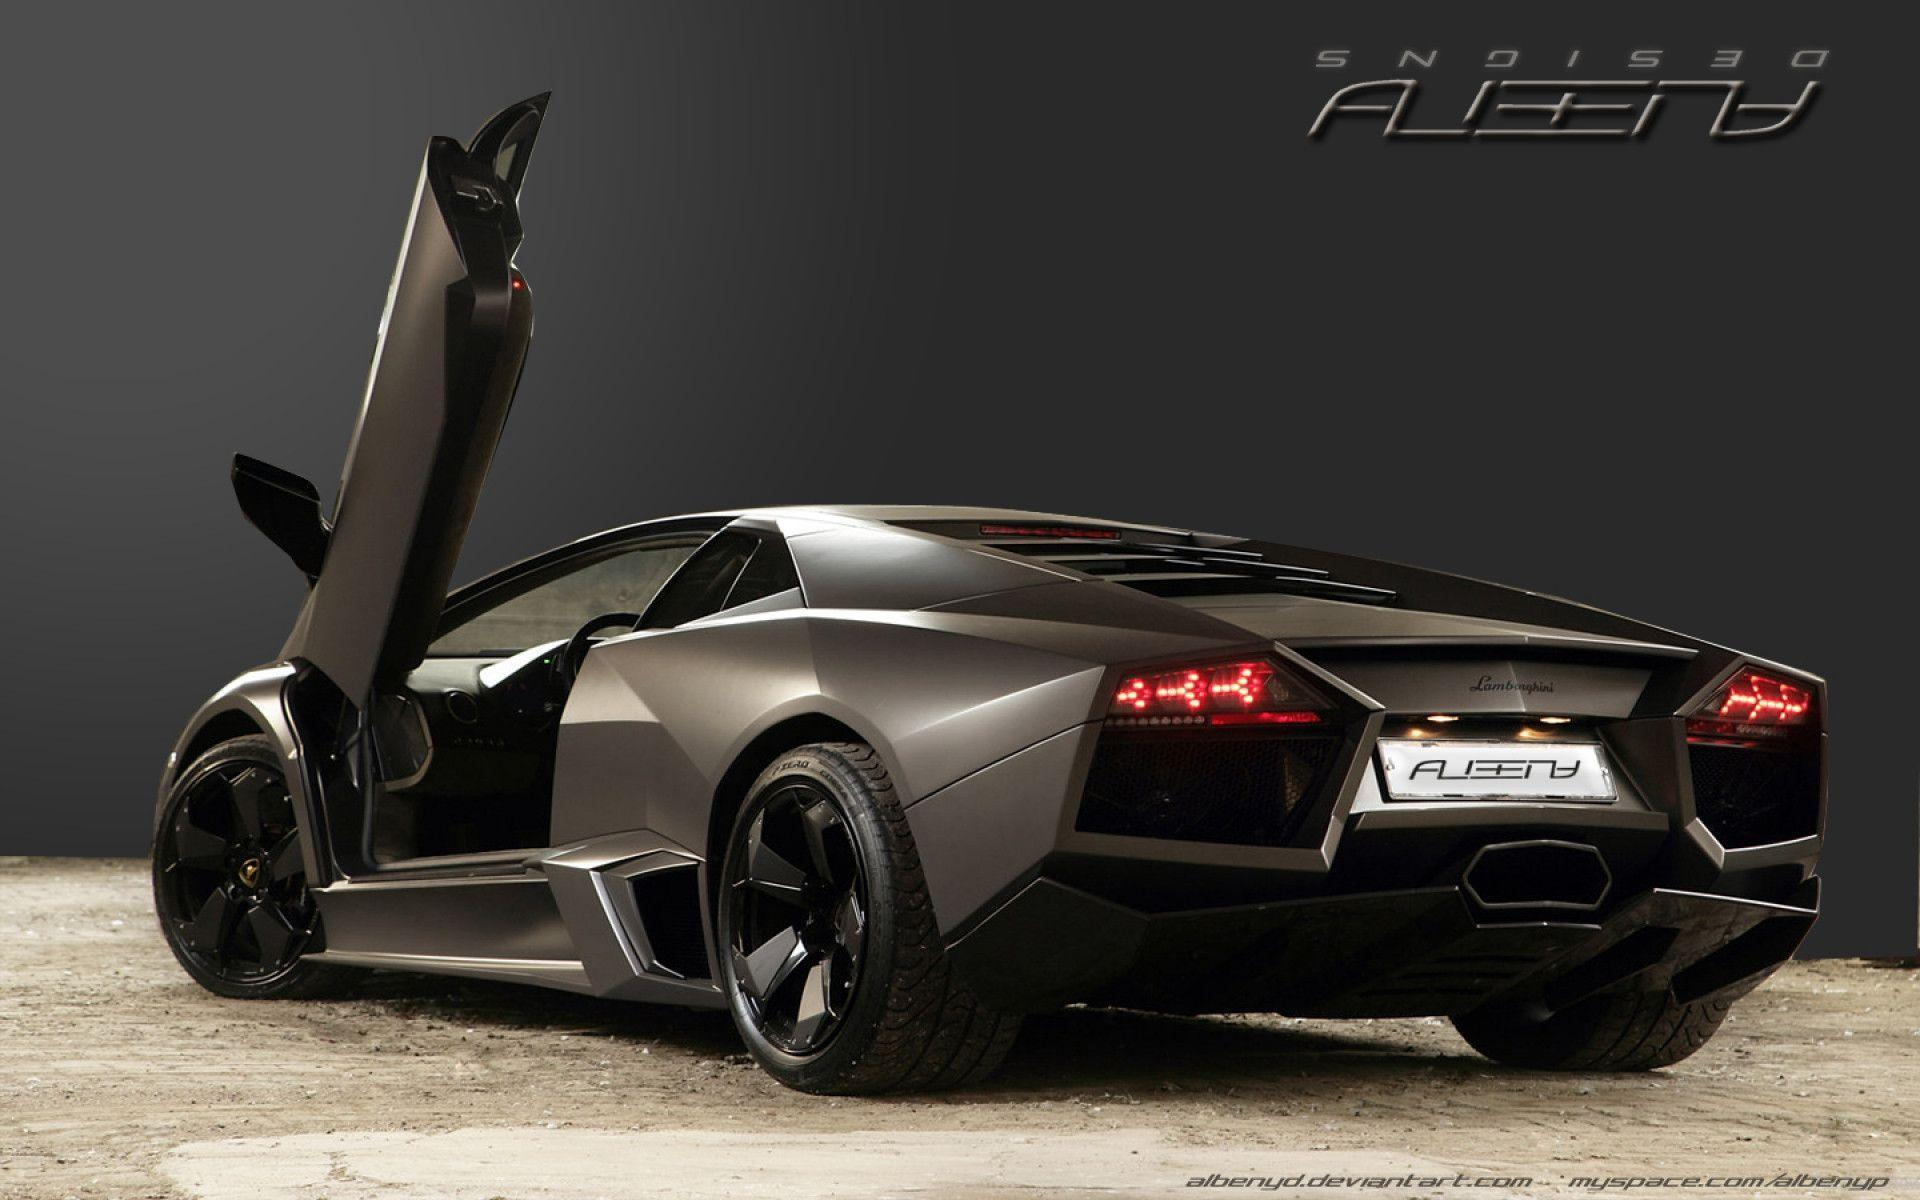 Lamborghini Reventon Wallpapers - Full HD wallpaper search